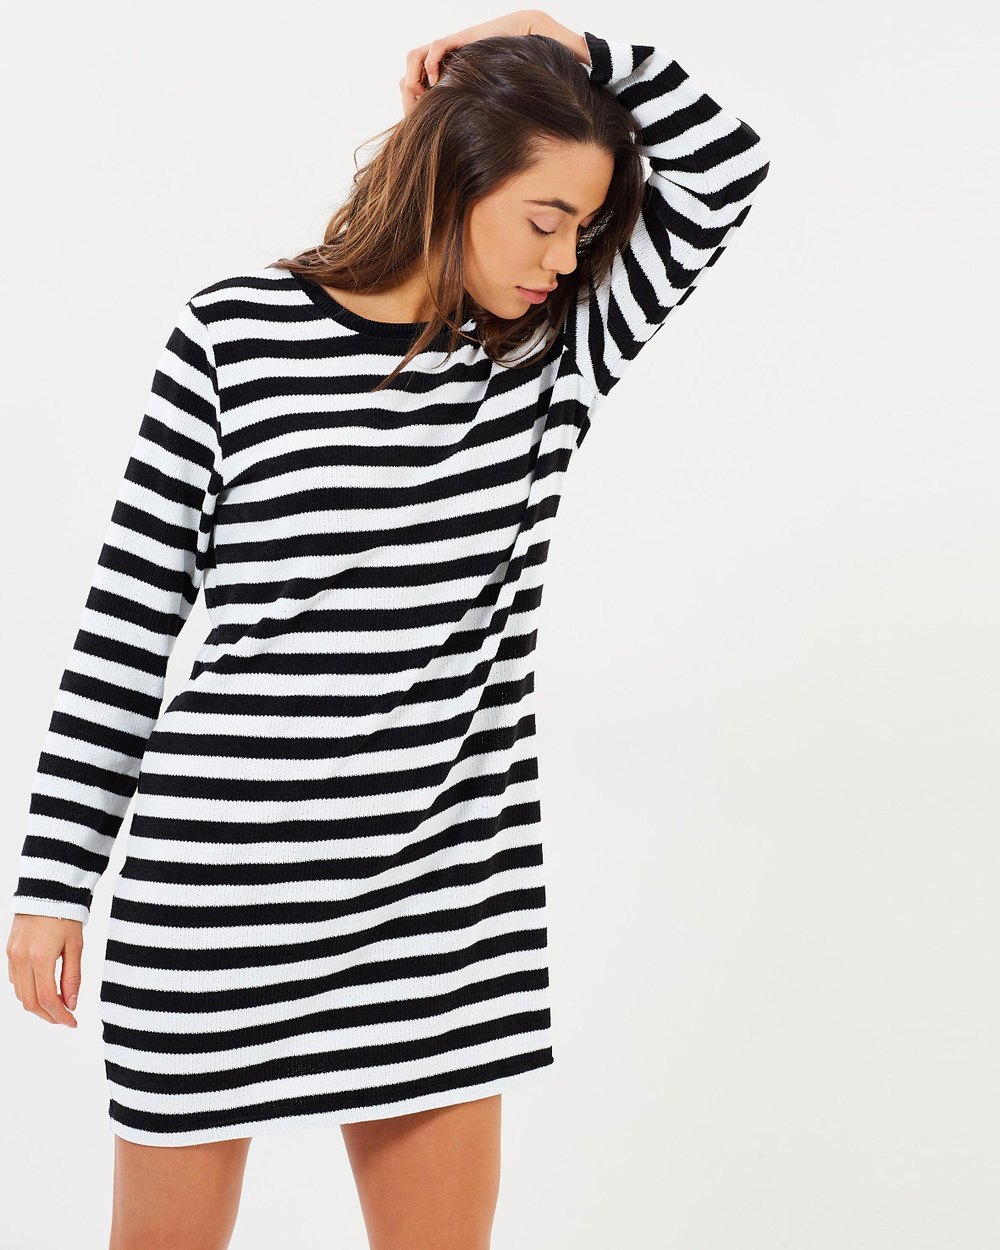 Atmos & Here ICONIC EXCLUSIVE Clea Relaxed Knit Dress Dresses Black & White Stripe ICONIC EXCLUSIVE Clea Relaxed Knit Dress